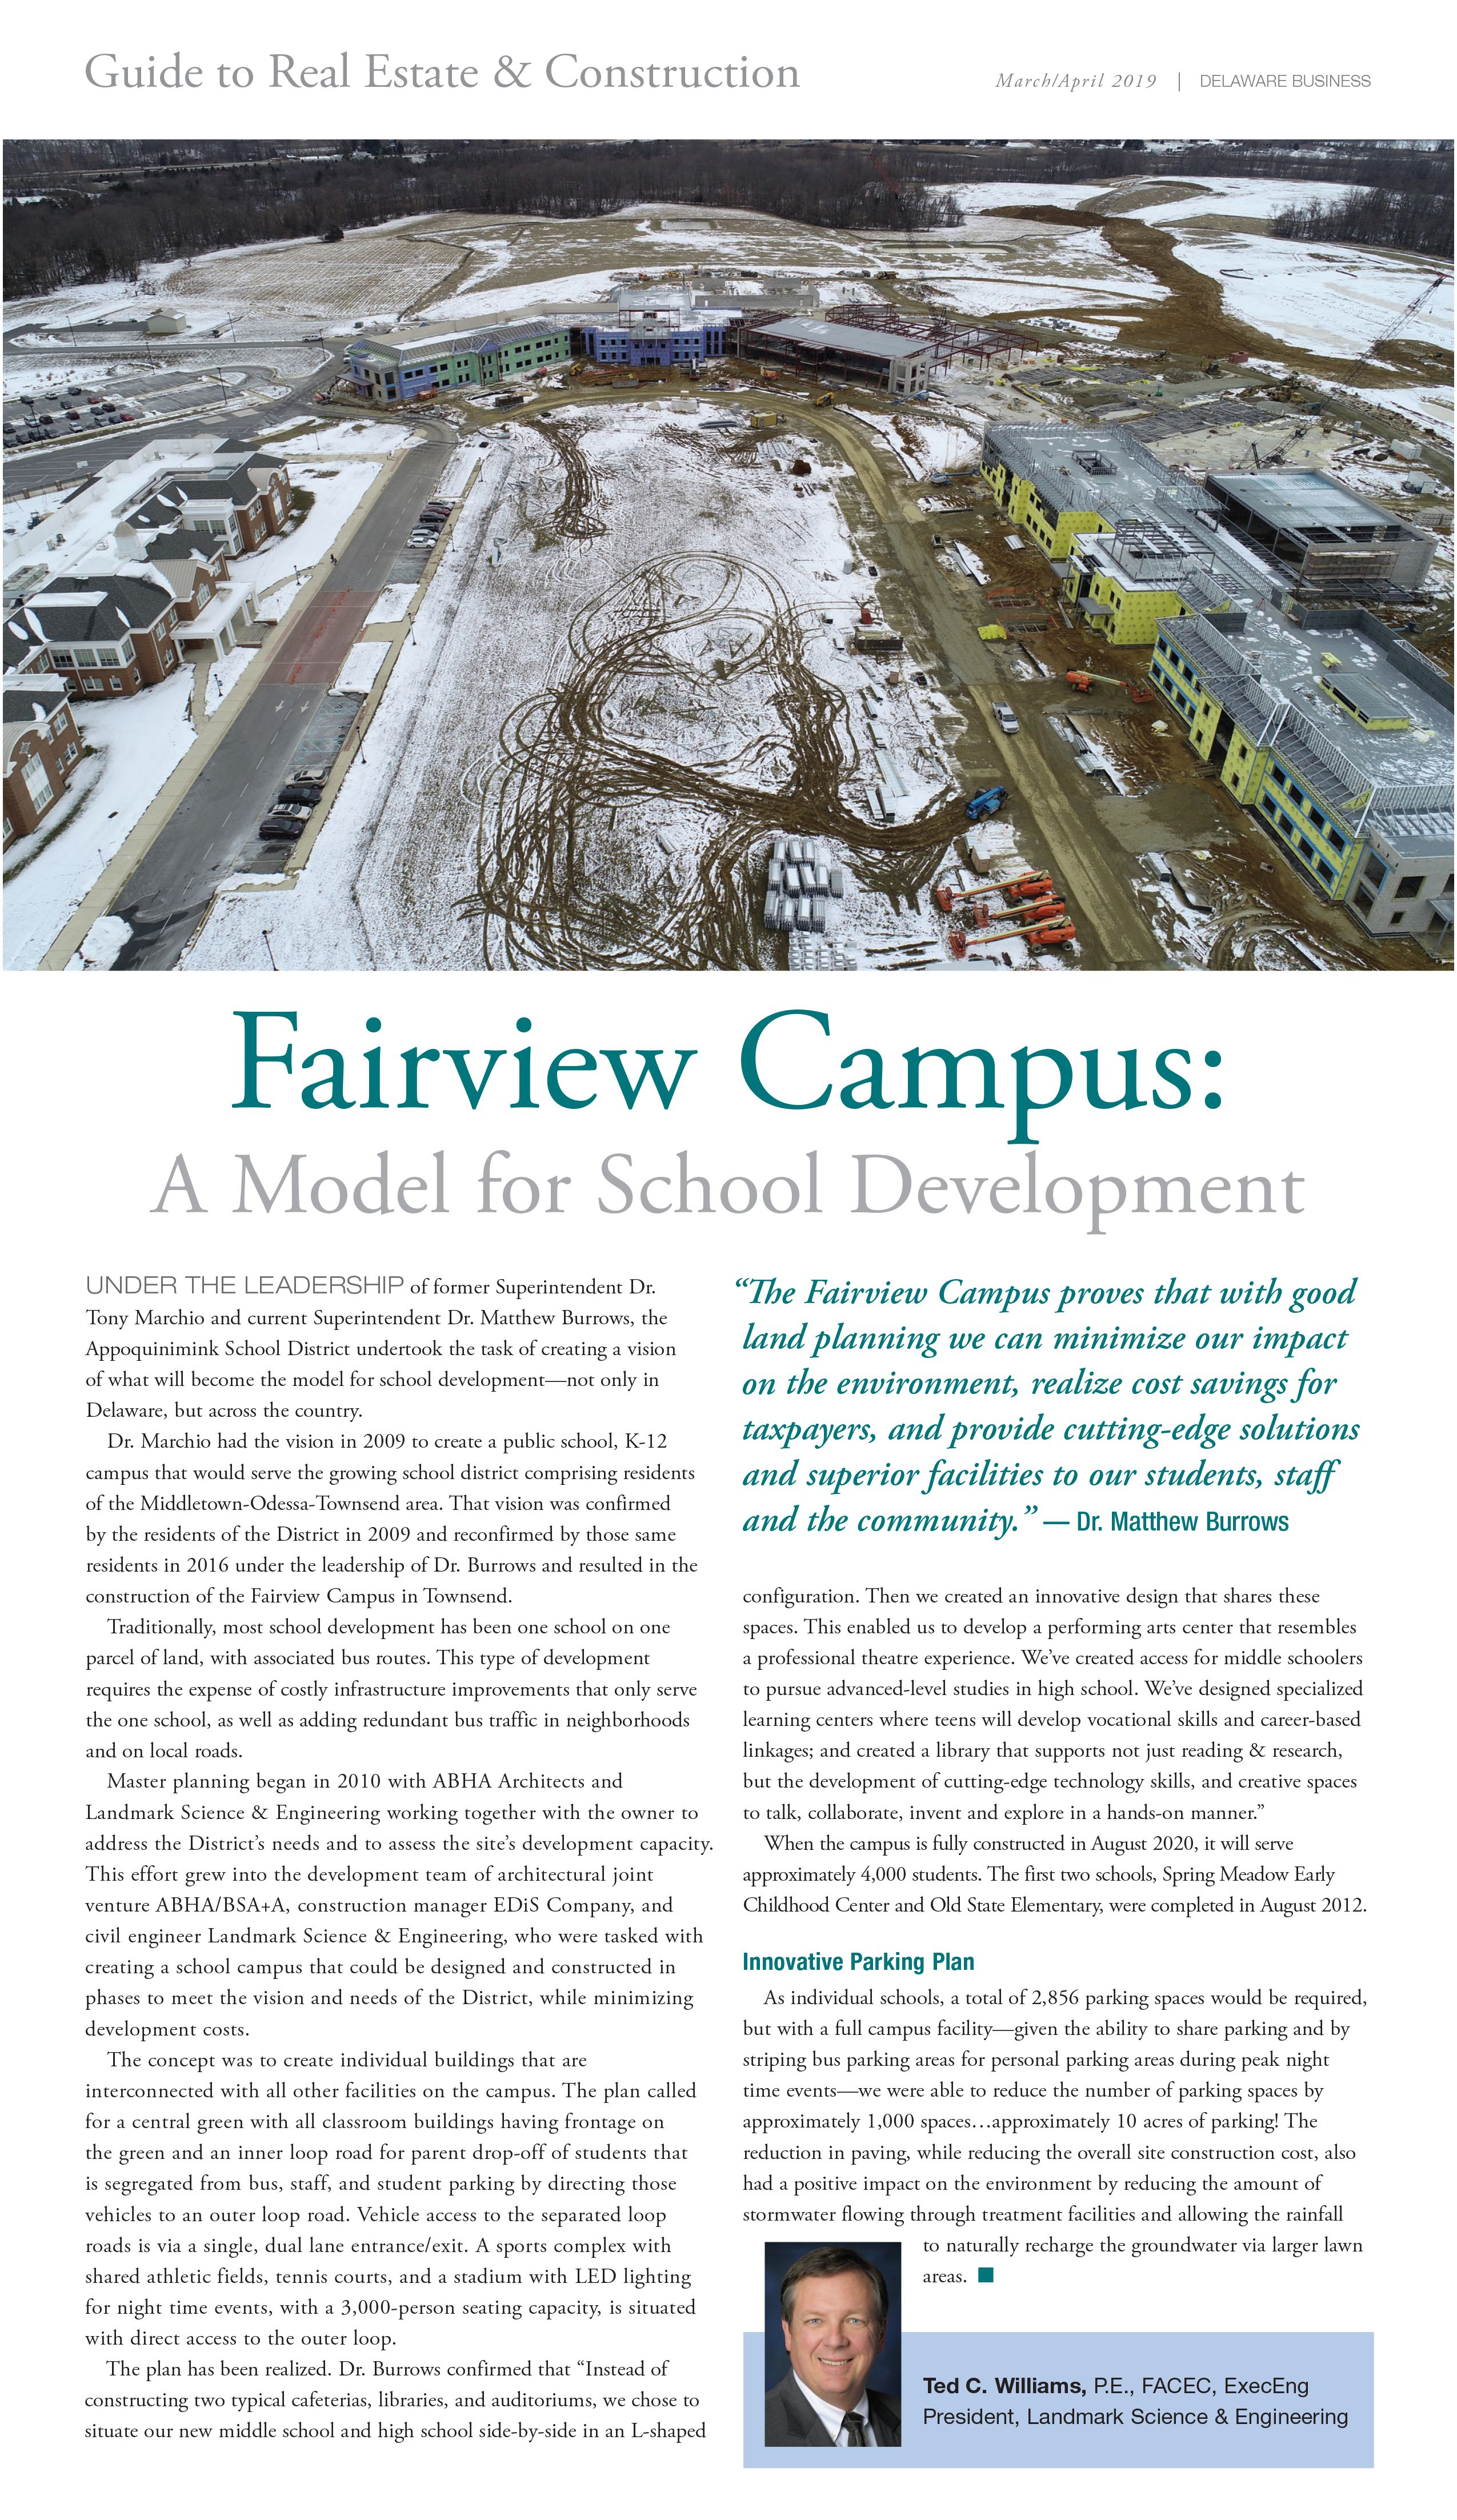 Delaware Business Magazine Edis Featured In Delaware Business Magazine Fairview Campus A